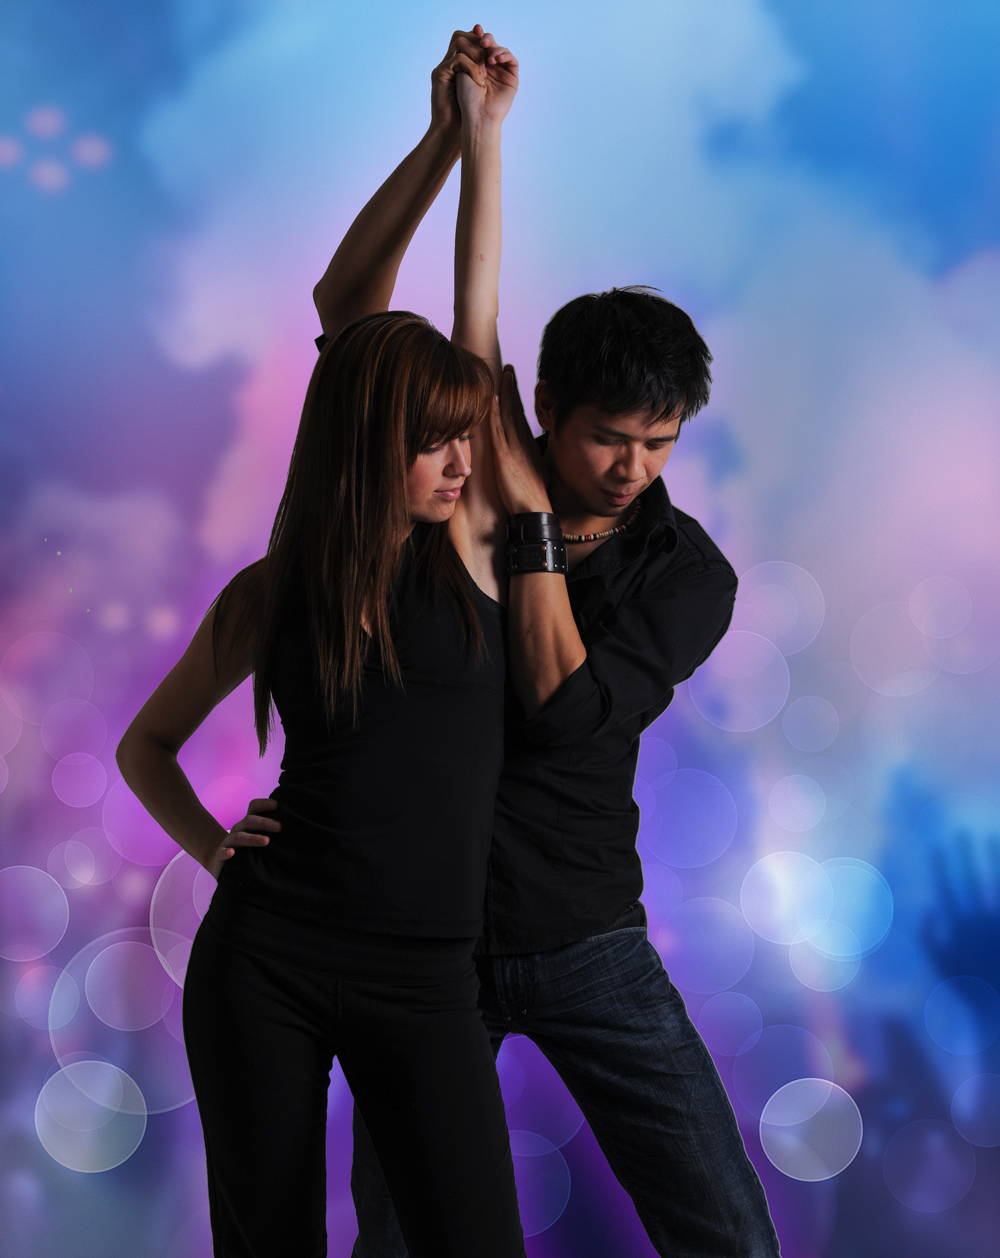 Club Dance For Women Instructors - Man and Woman